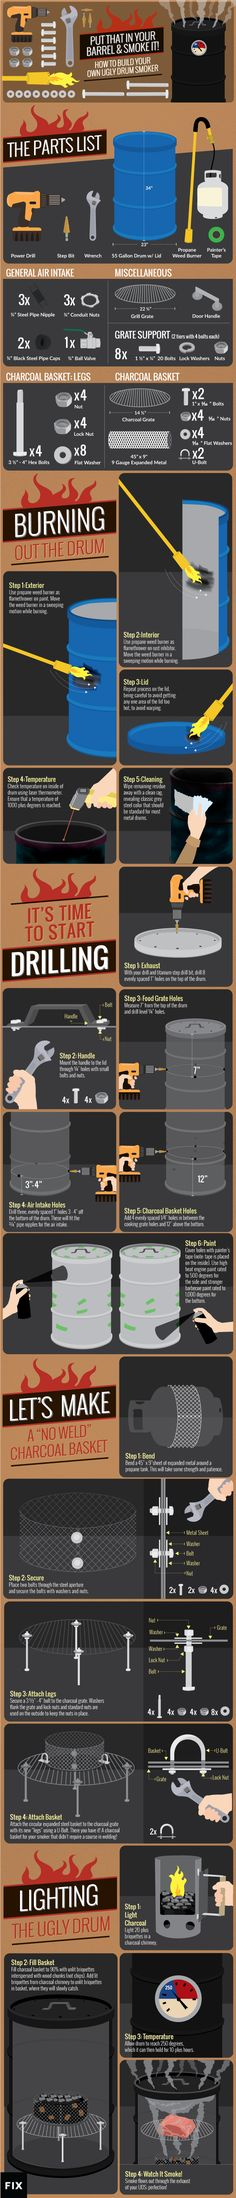 Put That in Your Barrel and Smoke It! How to Build Your Own Ugly Drum Smoker #infographic #DIY #HowTo